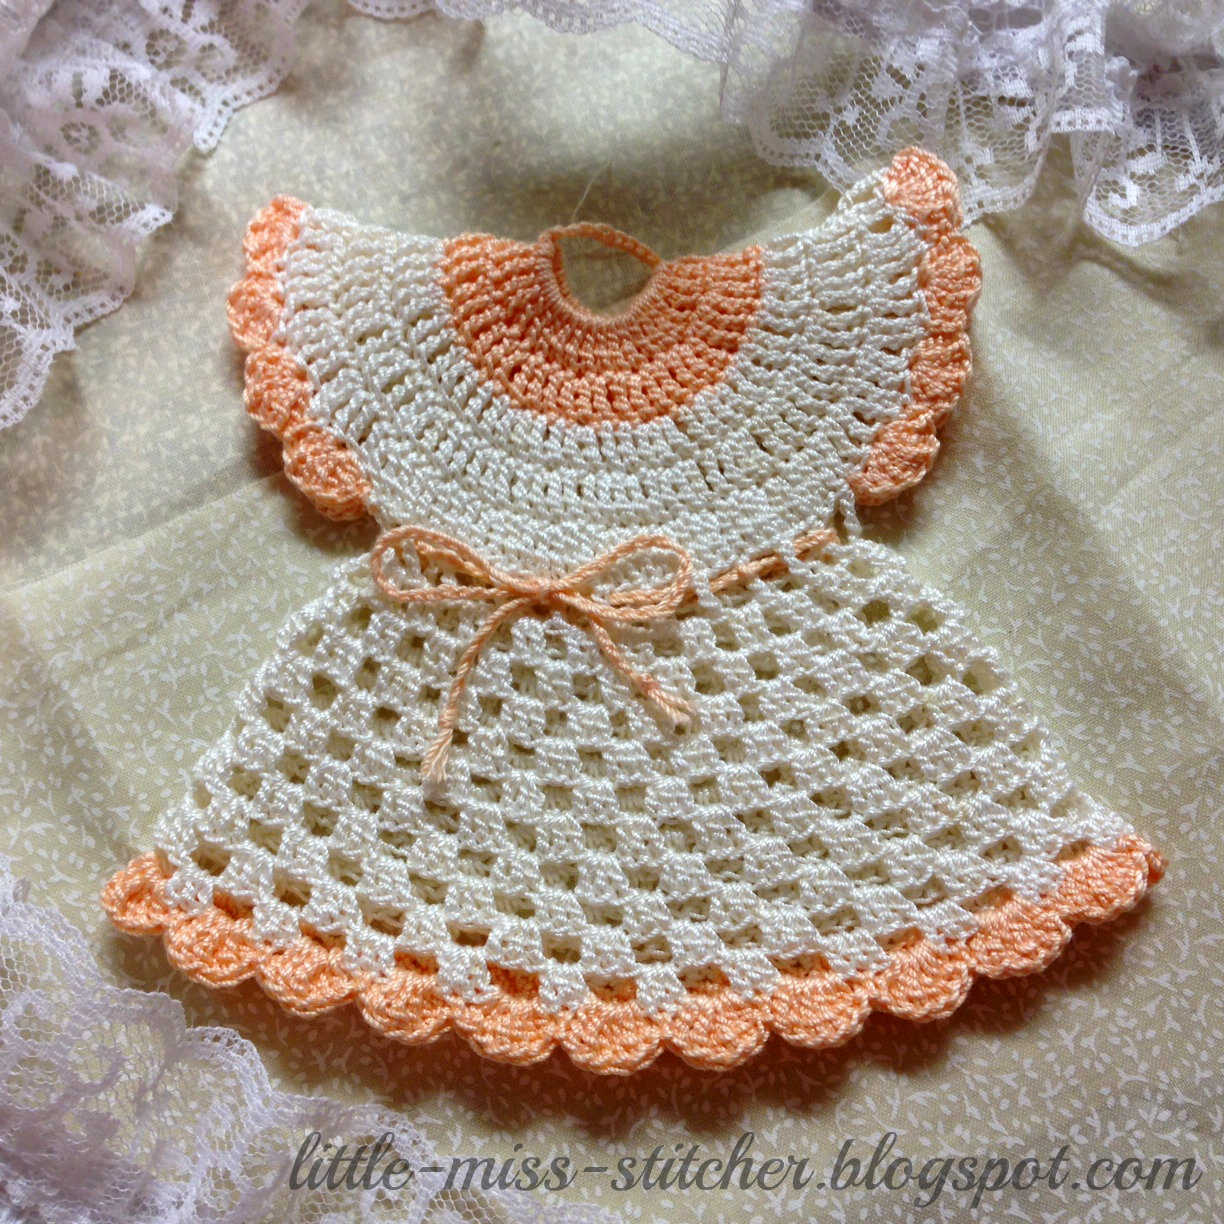 Crochet Patterns Vintage Potholders : First I found some peach and off white size 10 crochet thread.